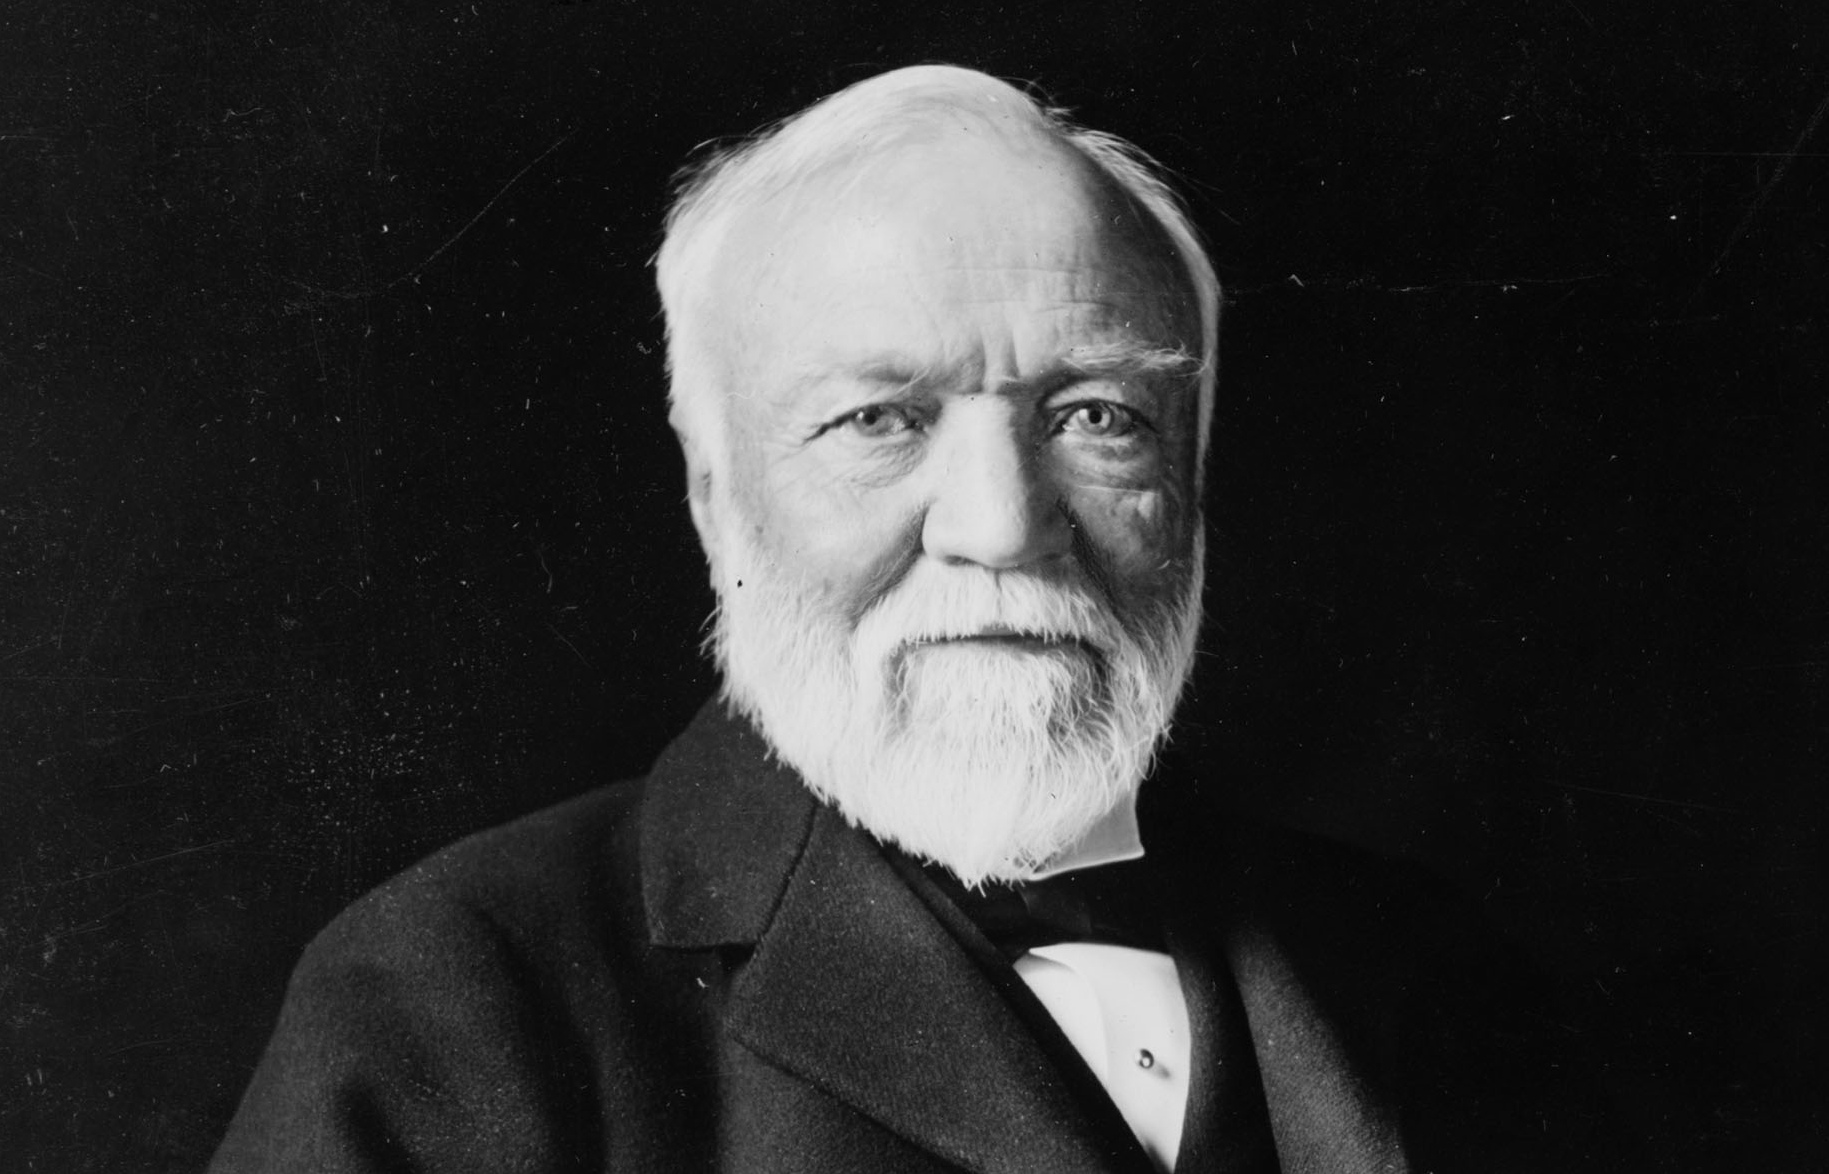 andrew carnegie surplus revenues quote - Andrew Carnegie - Surplus Revenues - Quote